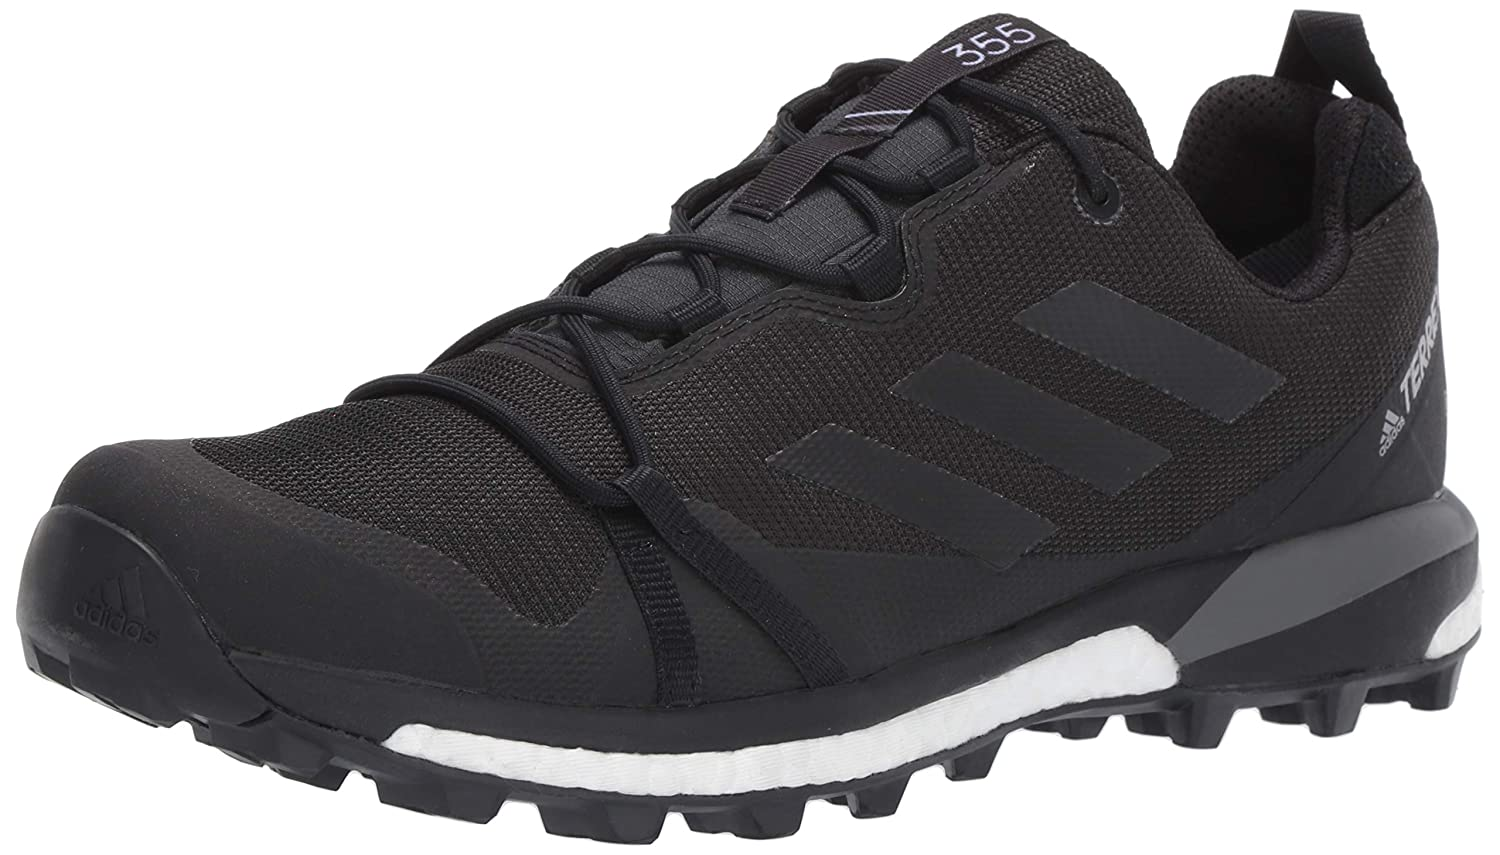 124ac291a1b adidas outdoor Men's Terrex Skychaser Lt GTX Walking Shoe